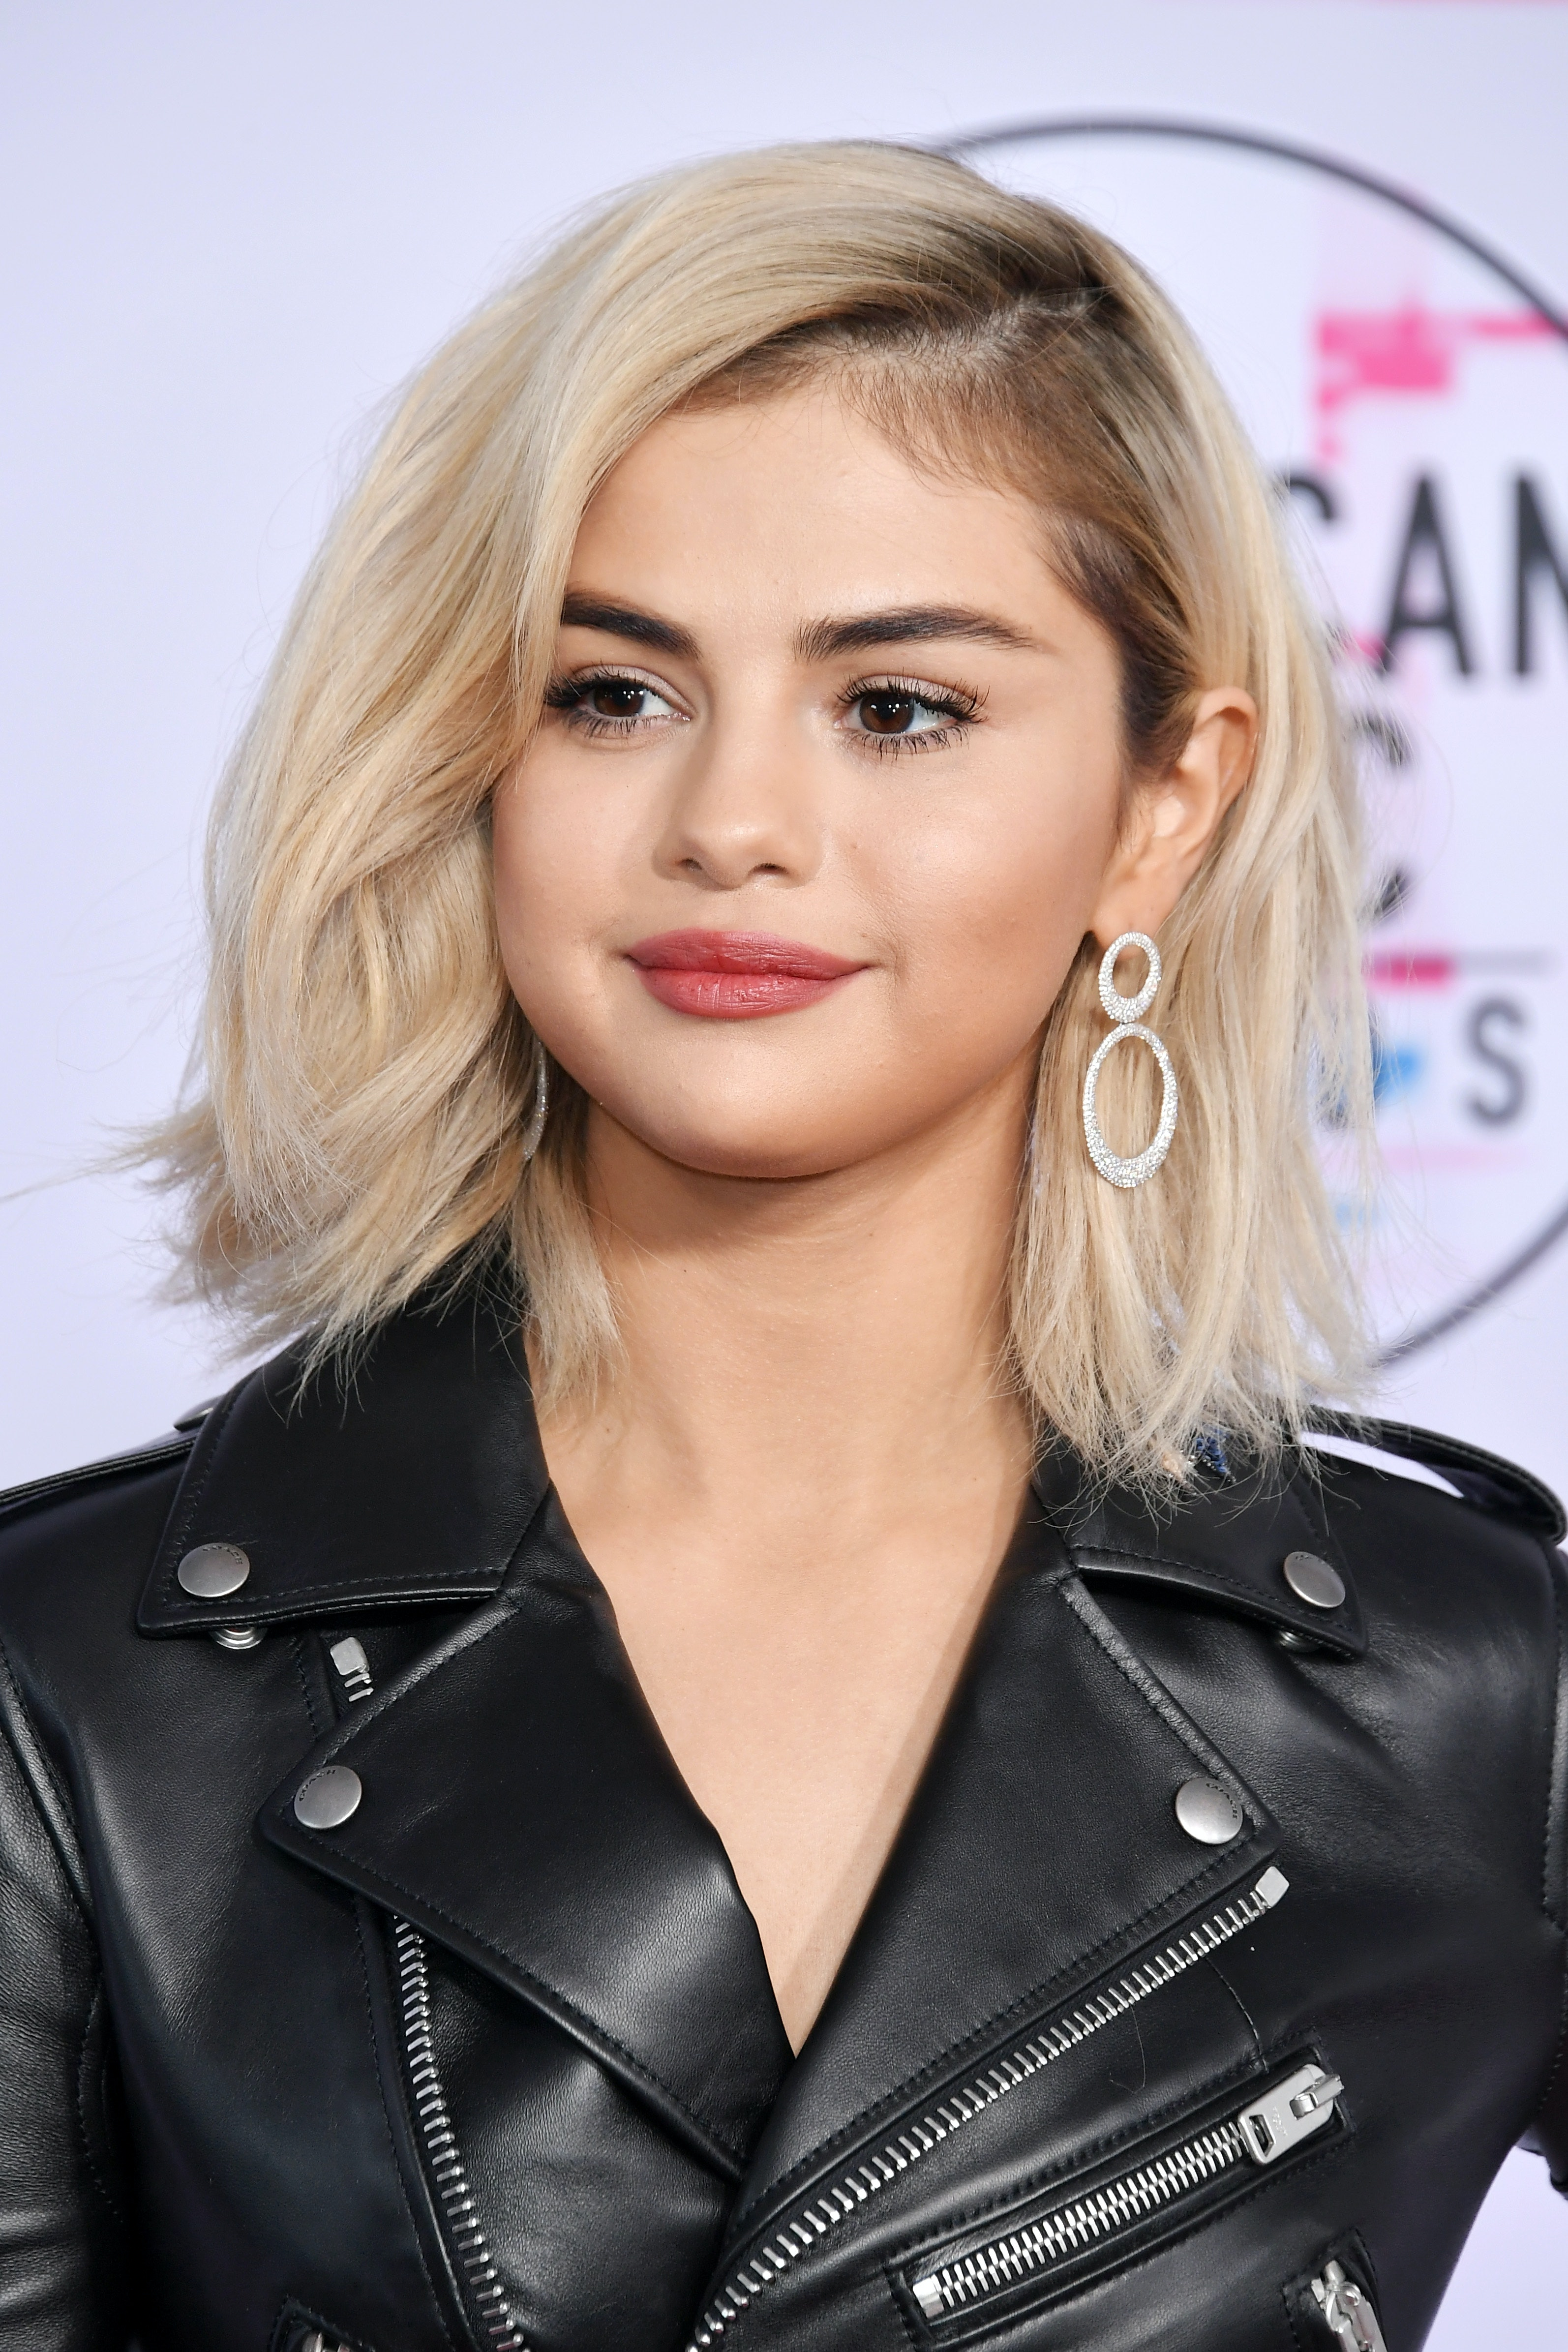 selena gomez's fight with her mom had nothing to do with justin bieber